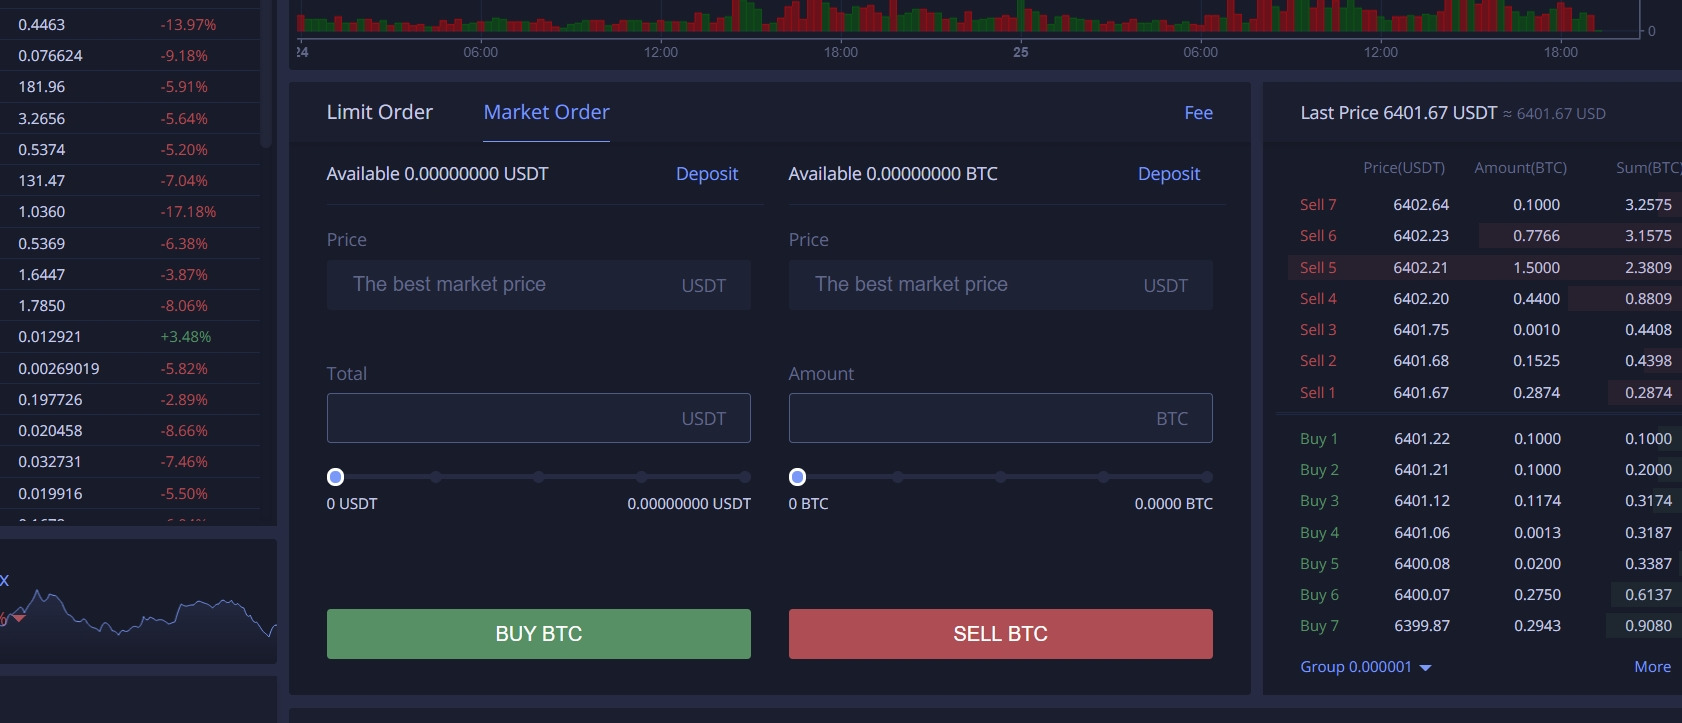 Buy and sell BTC on Huobi